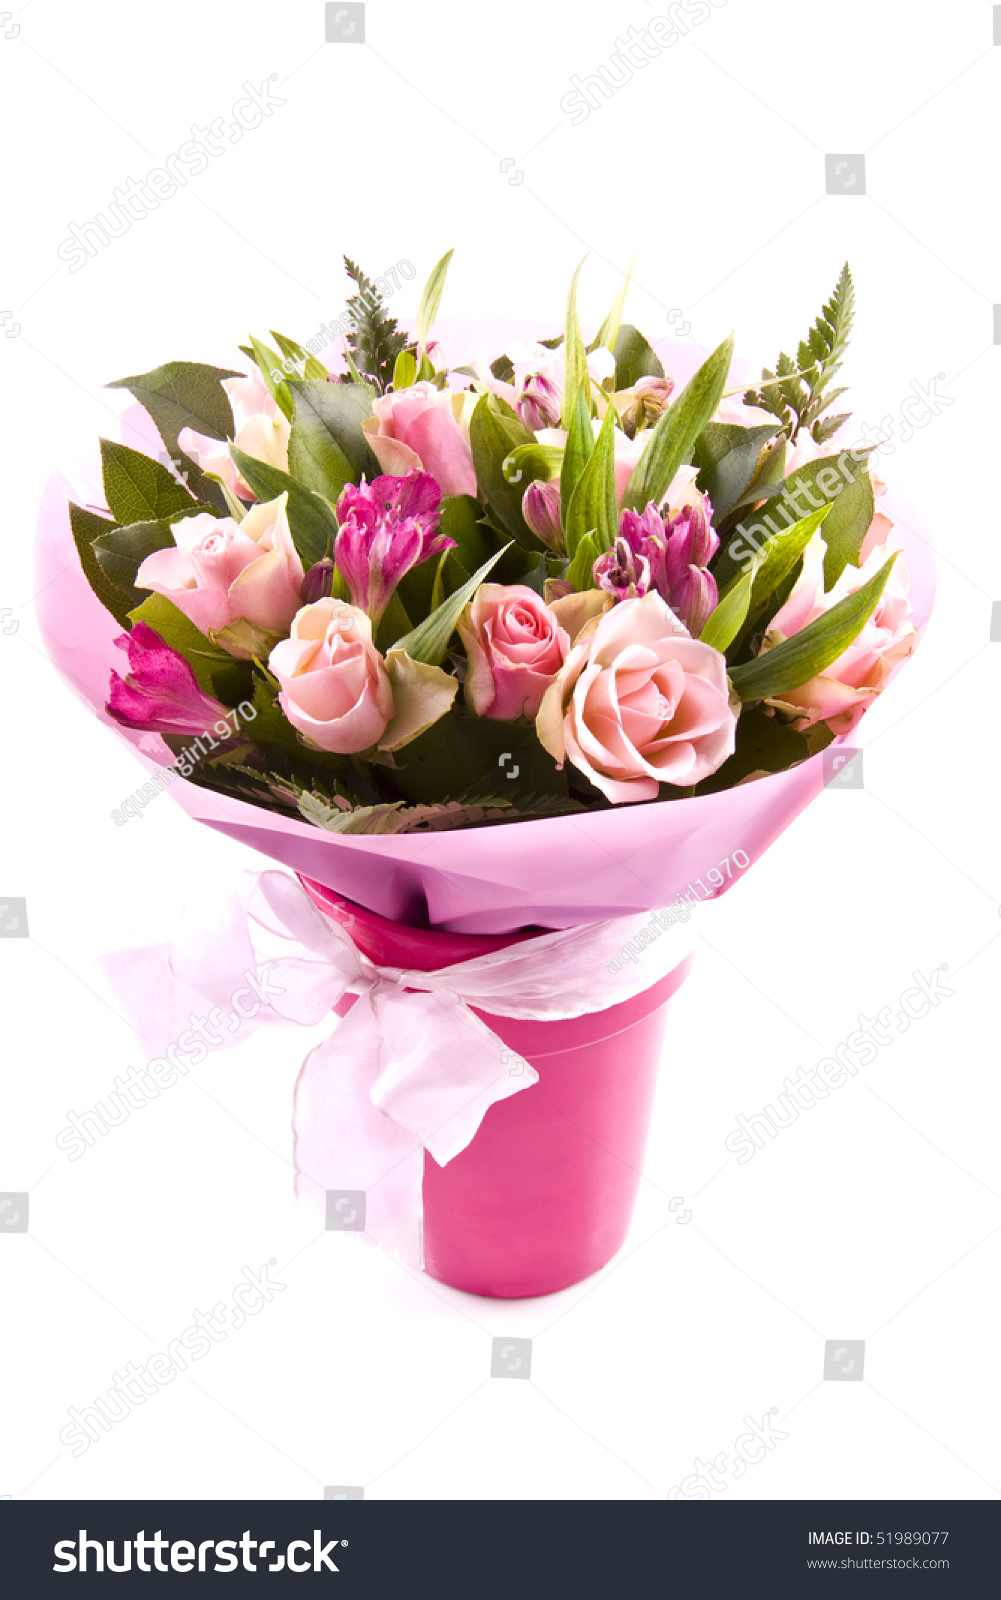 Bouquet different kind flowers isolated over stock illustration bouquet with different kind of flowers isolated over white izmirmasajfo